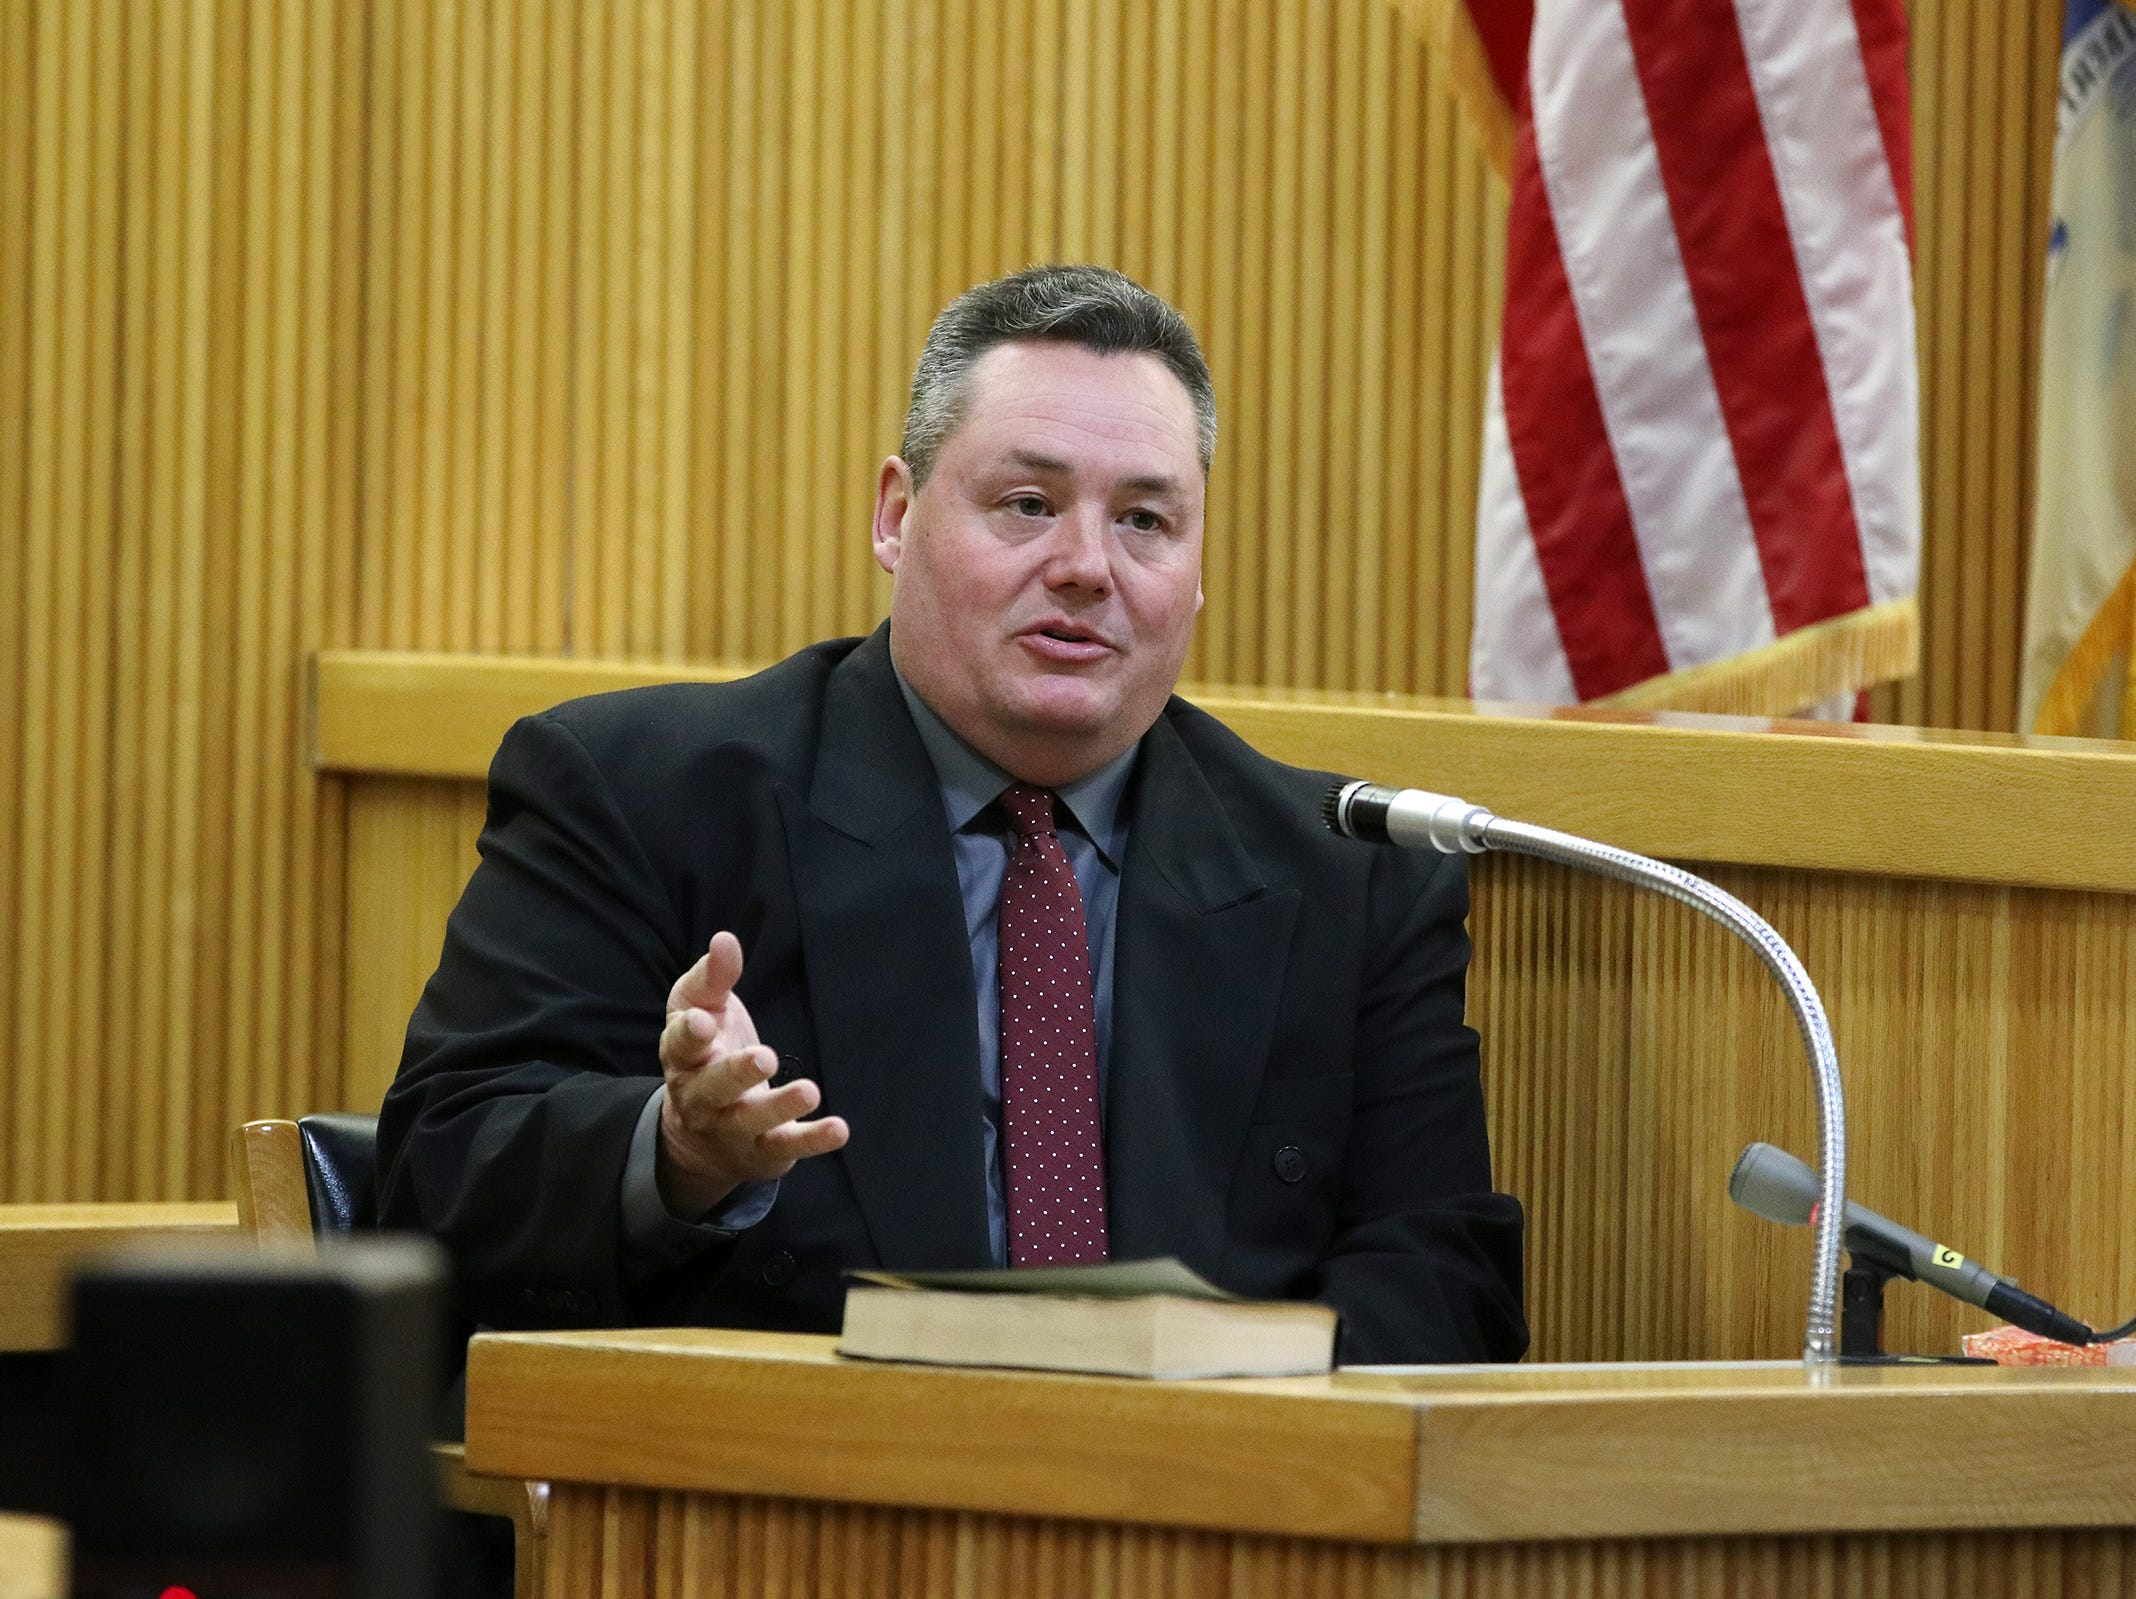 Neptune City Police Sgt. Bradley Hindes testifies during the trial of Liam McAtasney, who is charged with the murder of former high school classmate, Sarah Stern, before Superior Court Judge Richard W. English at the Monmouth County Courthouse in Freehold, NJ Tuesday January 29, 2019.